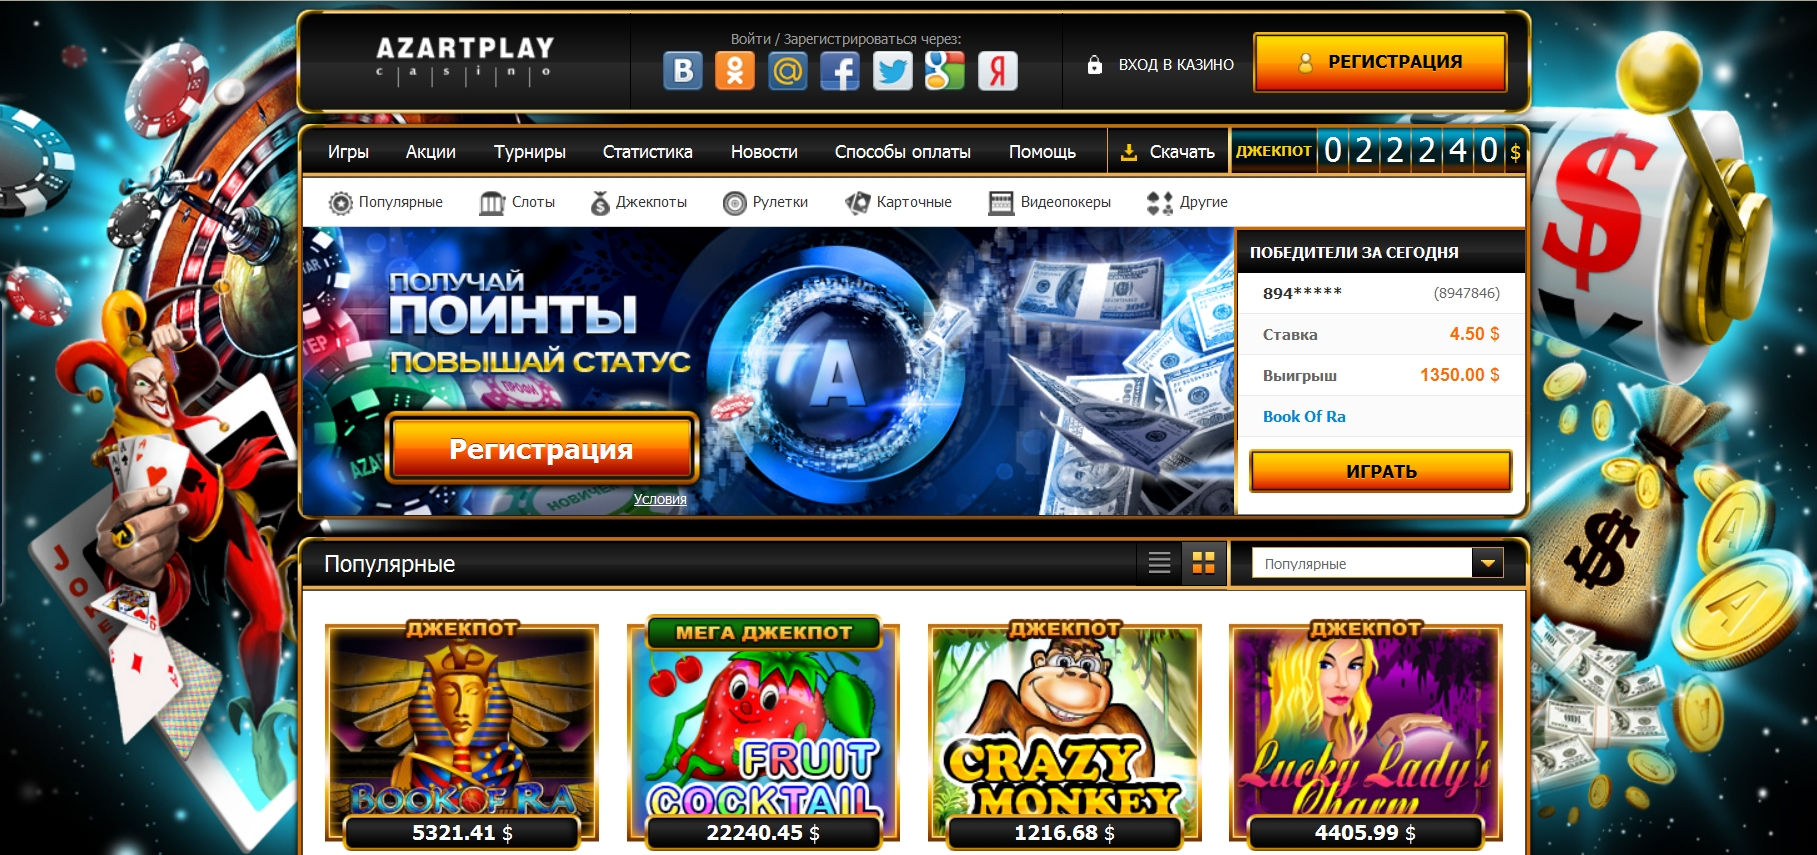 официальный сайт best casinoz info онлайн казино azartplay